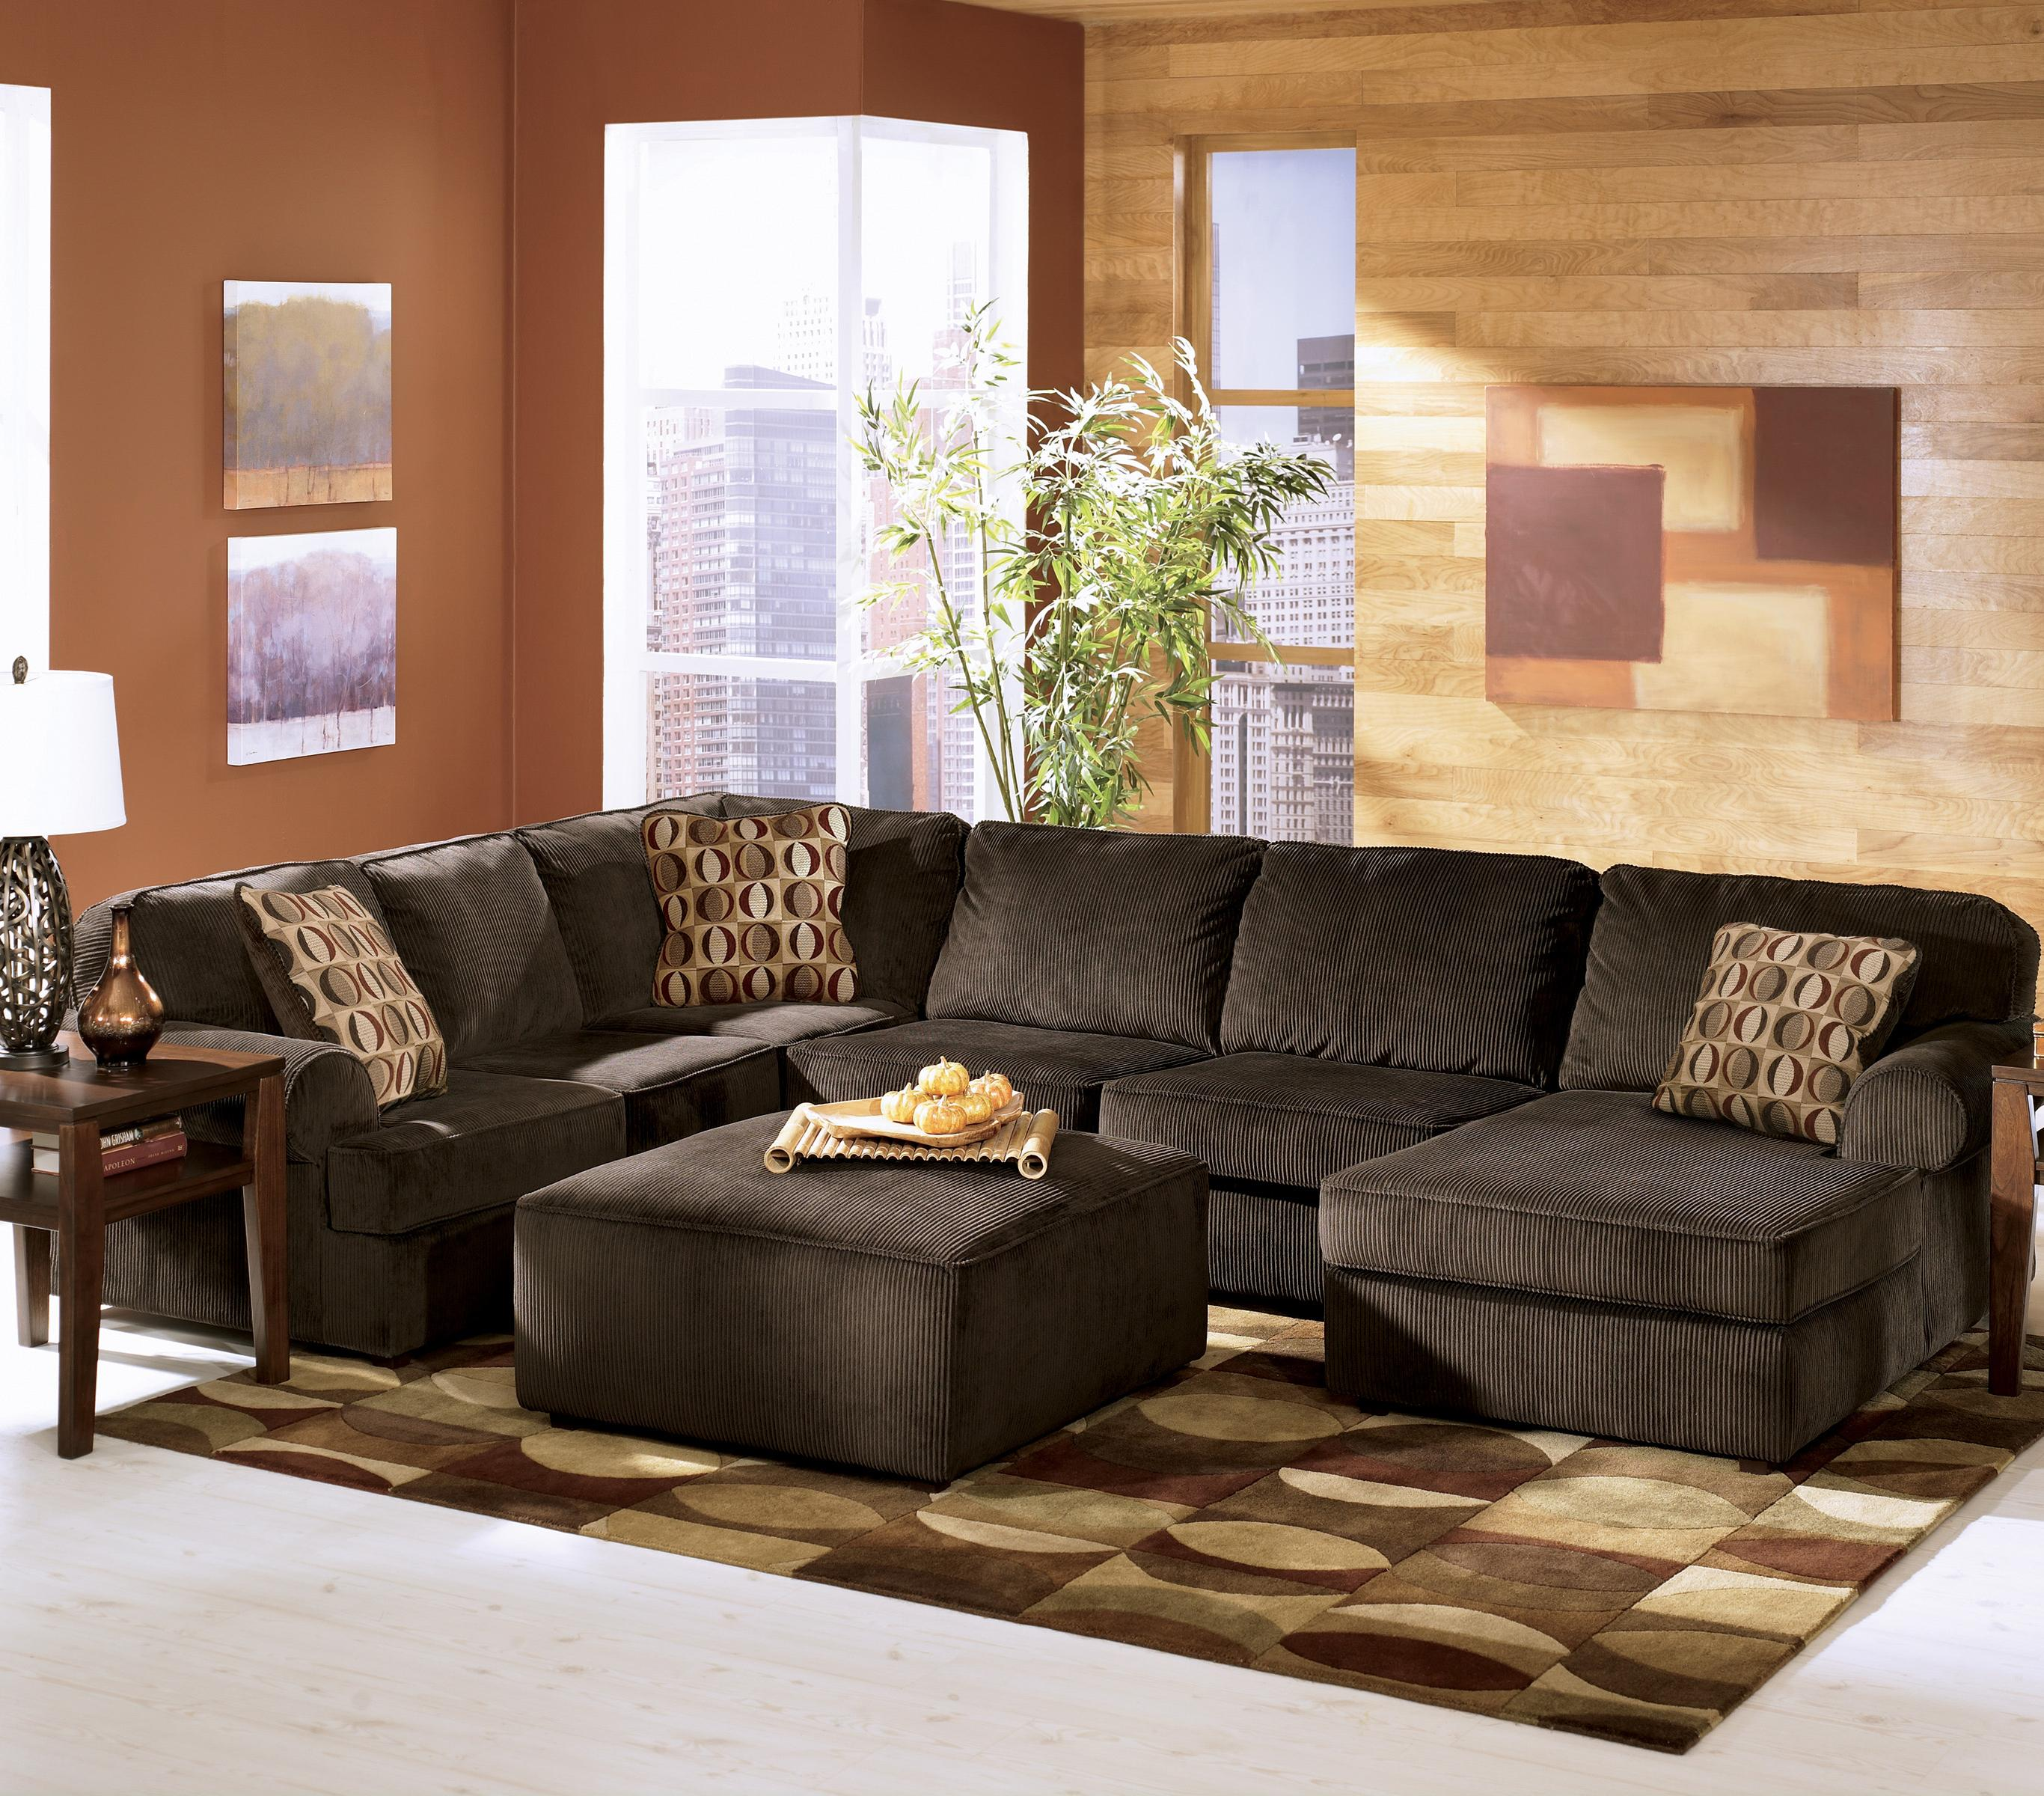 Ashley Furniture Sales Ad: Chocolate Casual 3-Piece